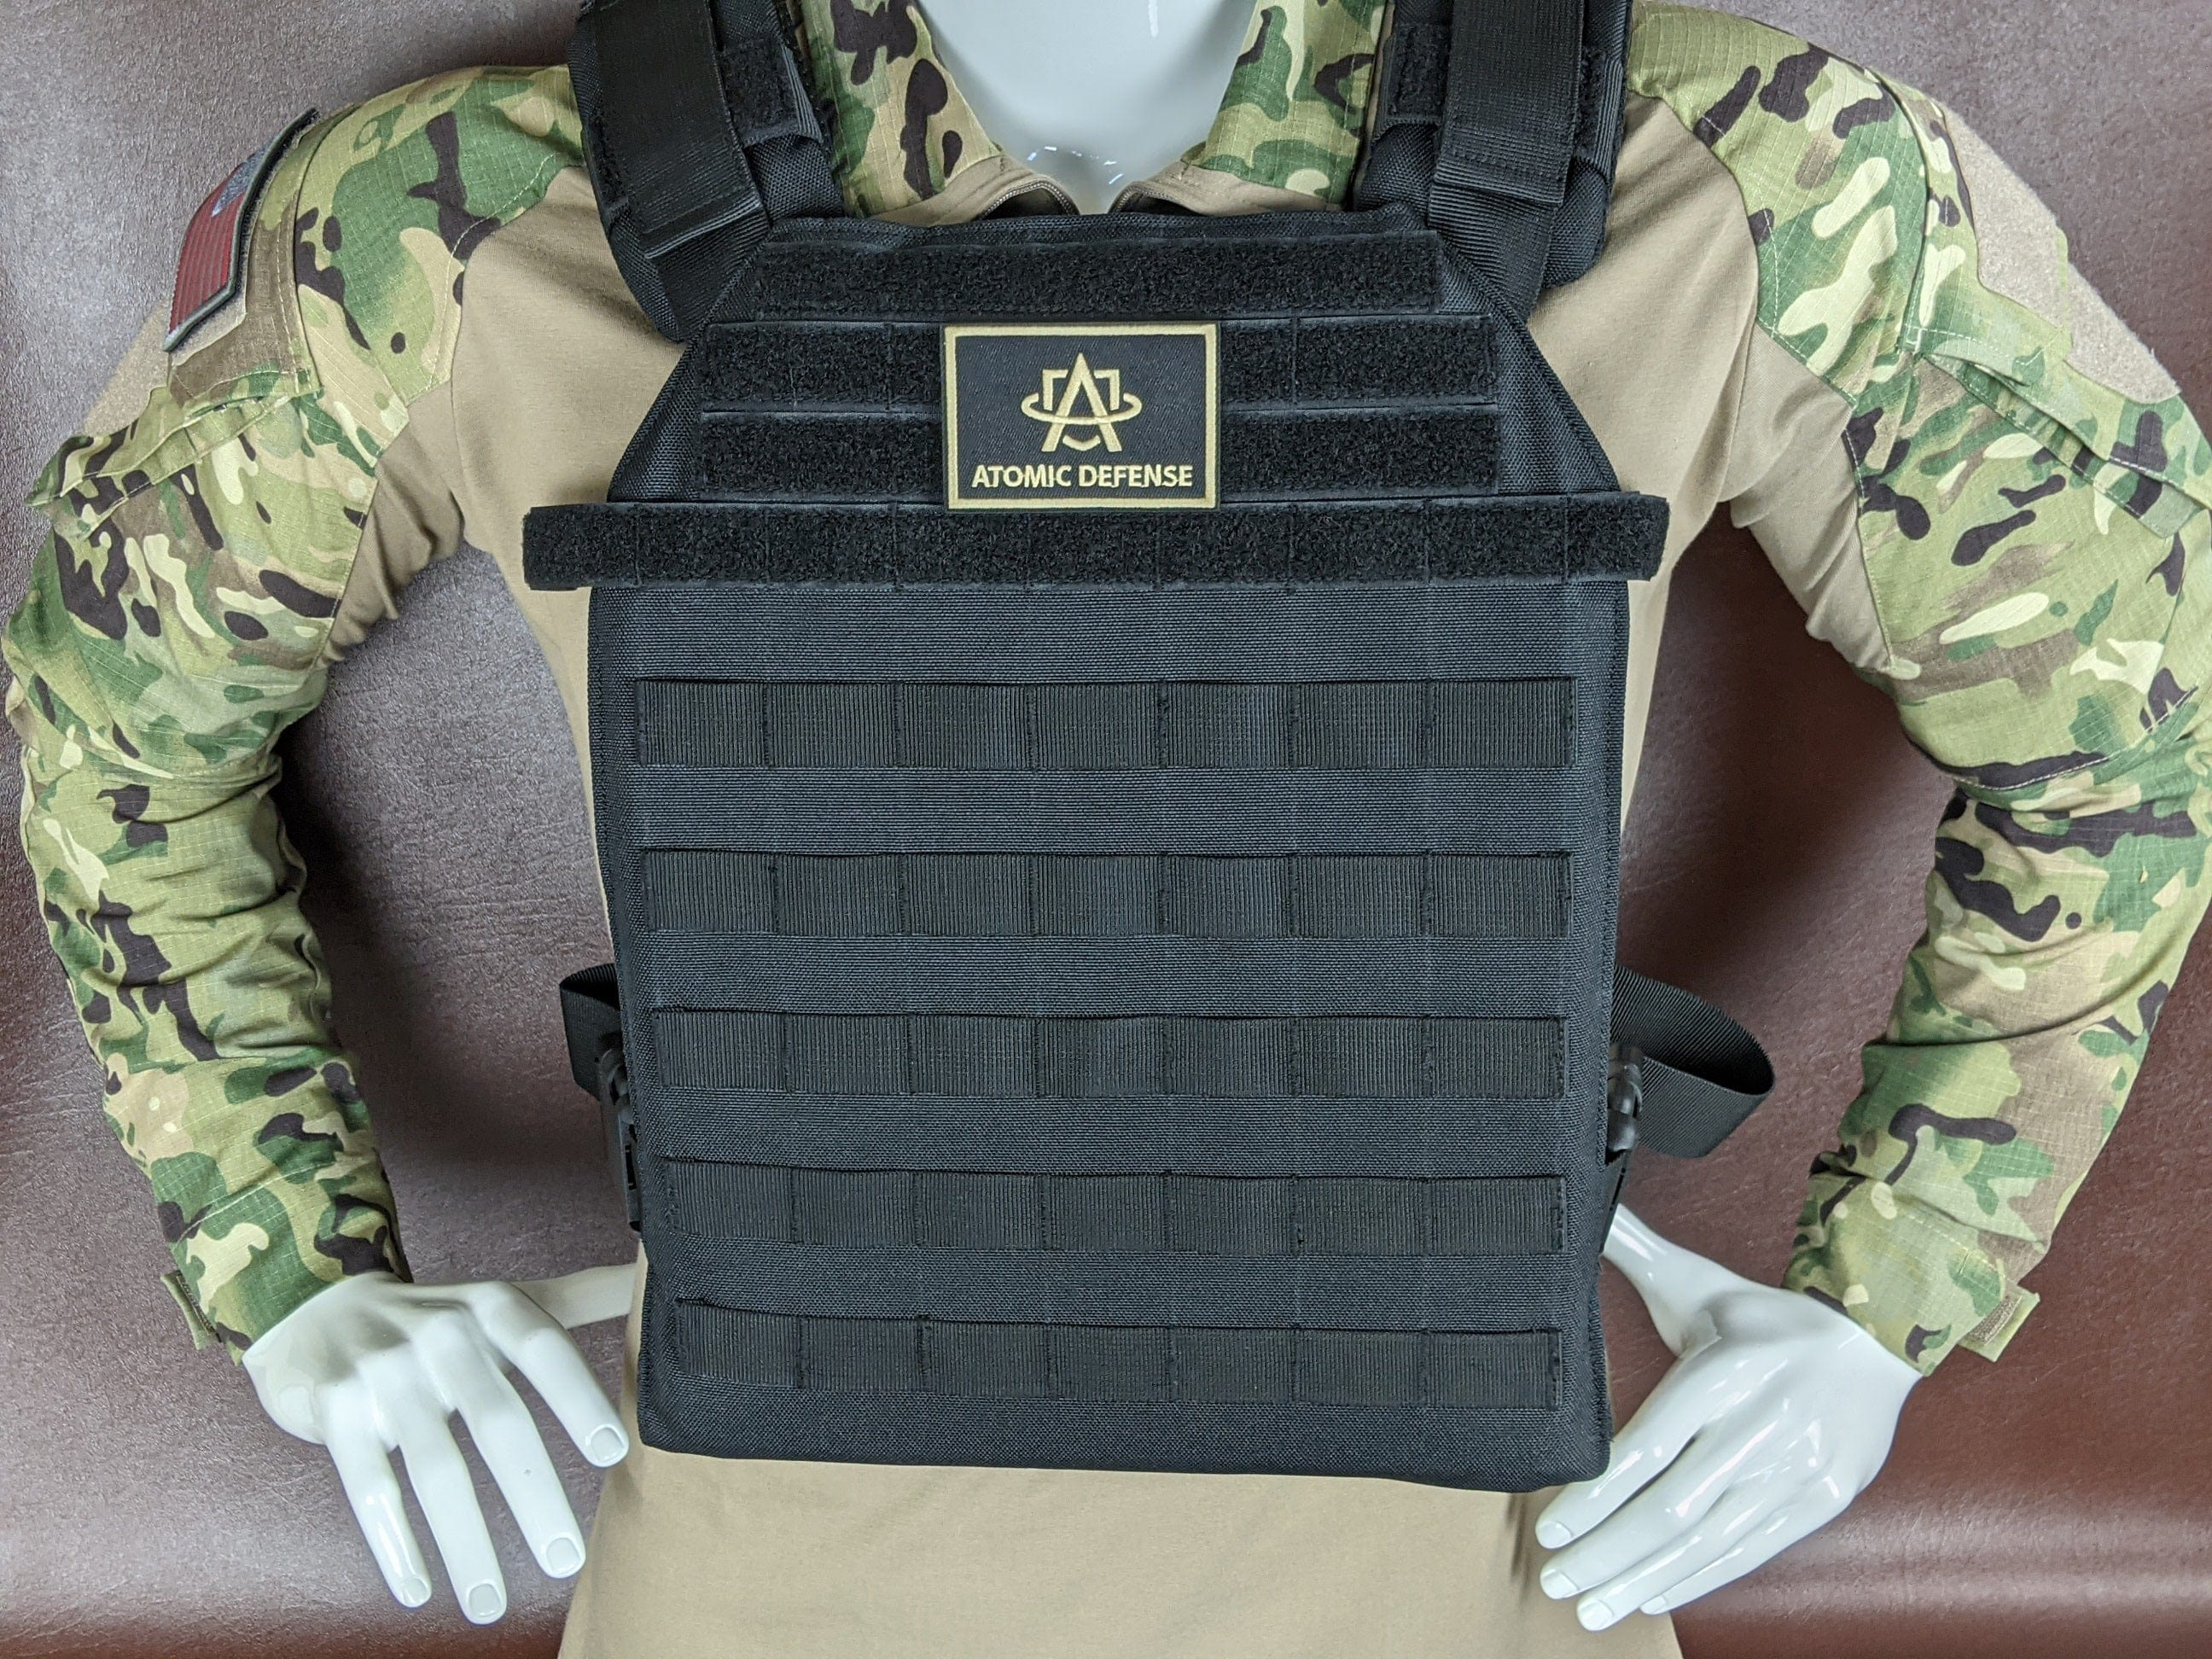 11x14 Armor Plate Carrier with IIIA Plates - Atomic Defense